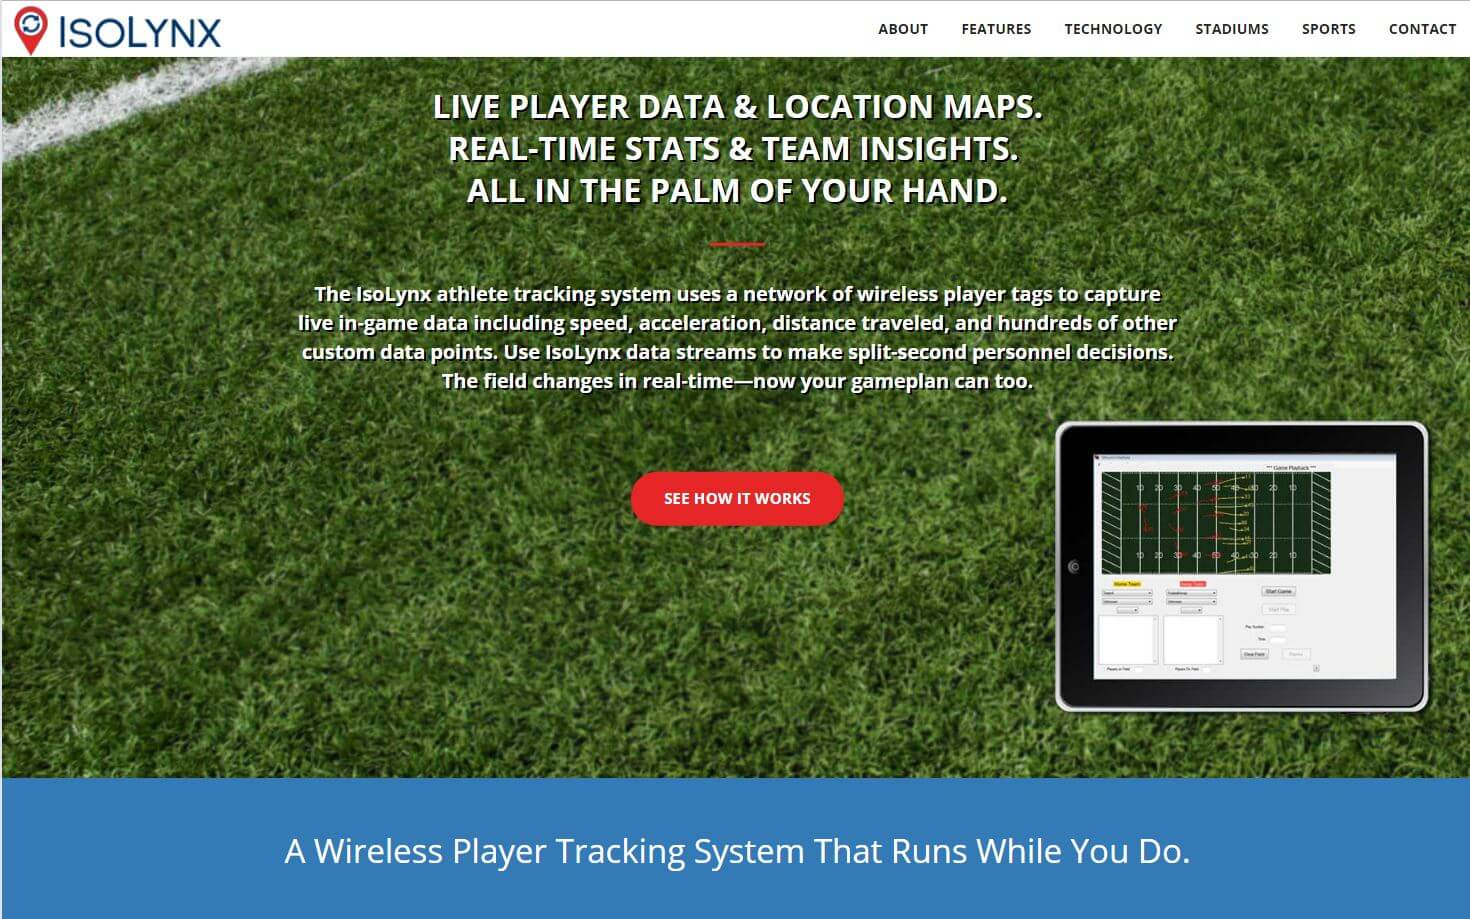 IsoLynx sports tracking website